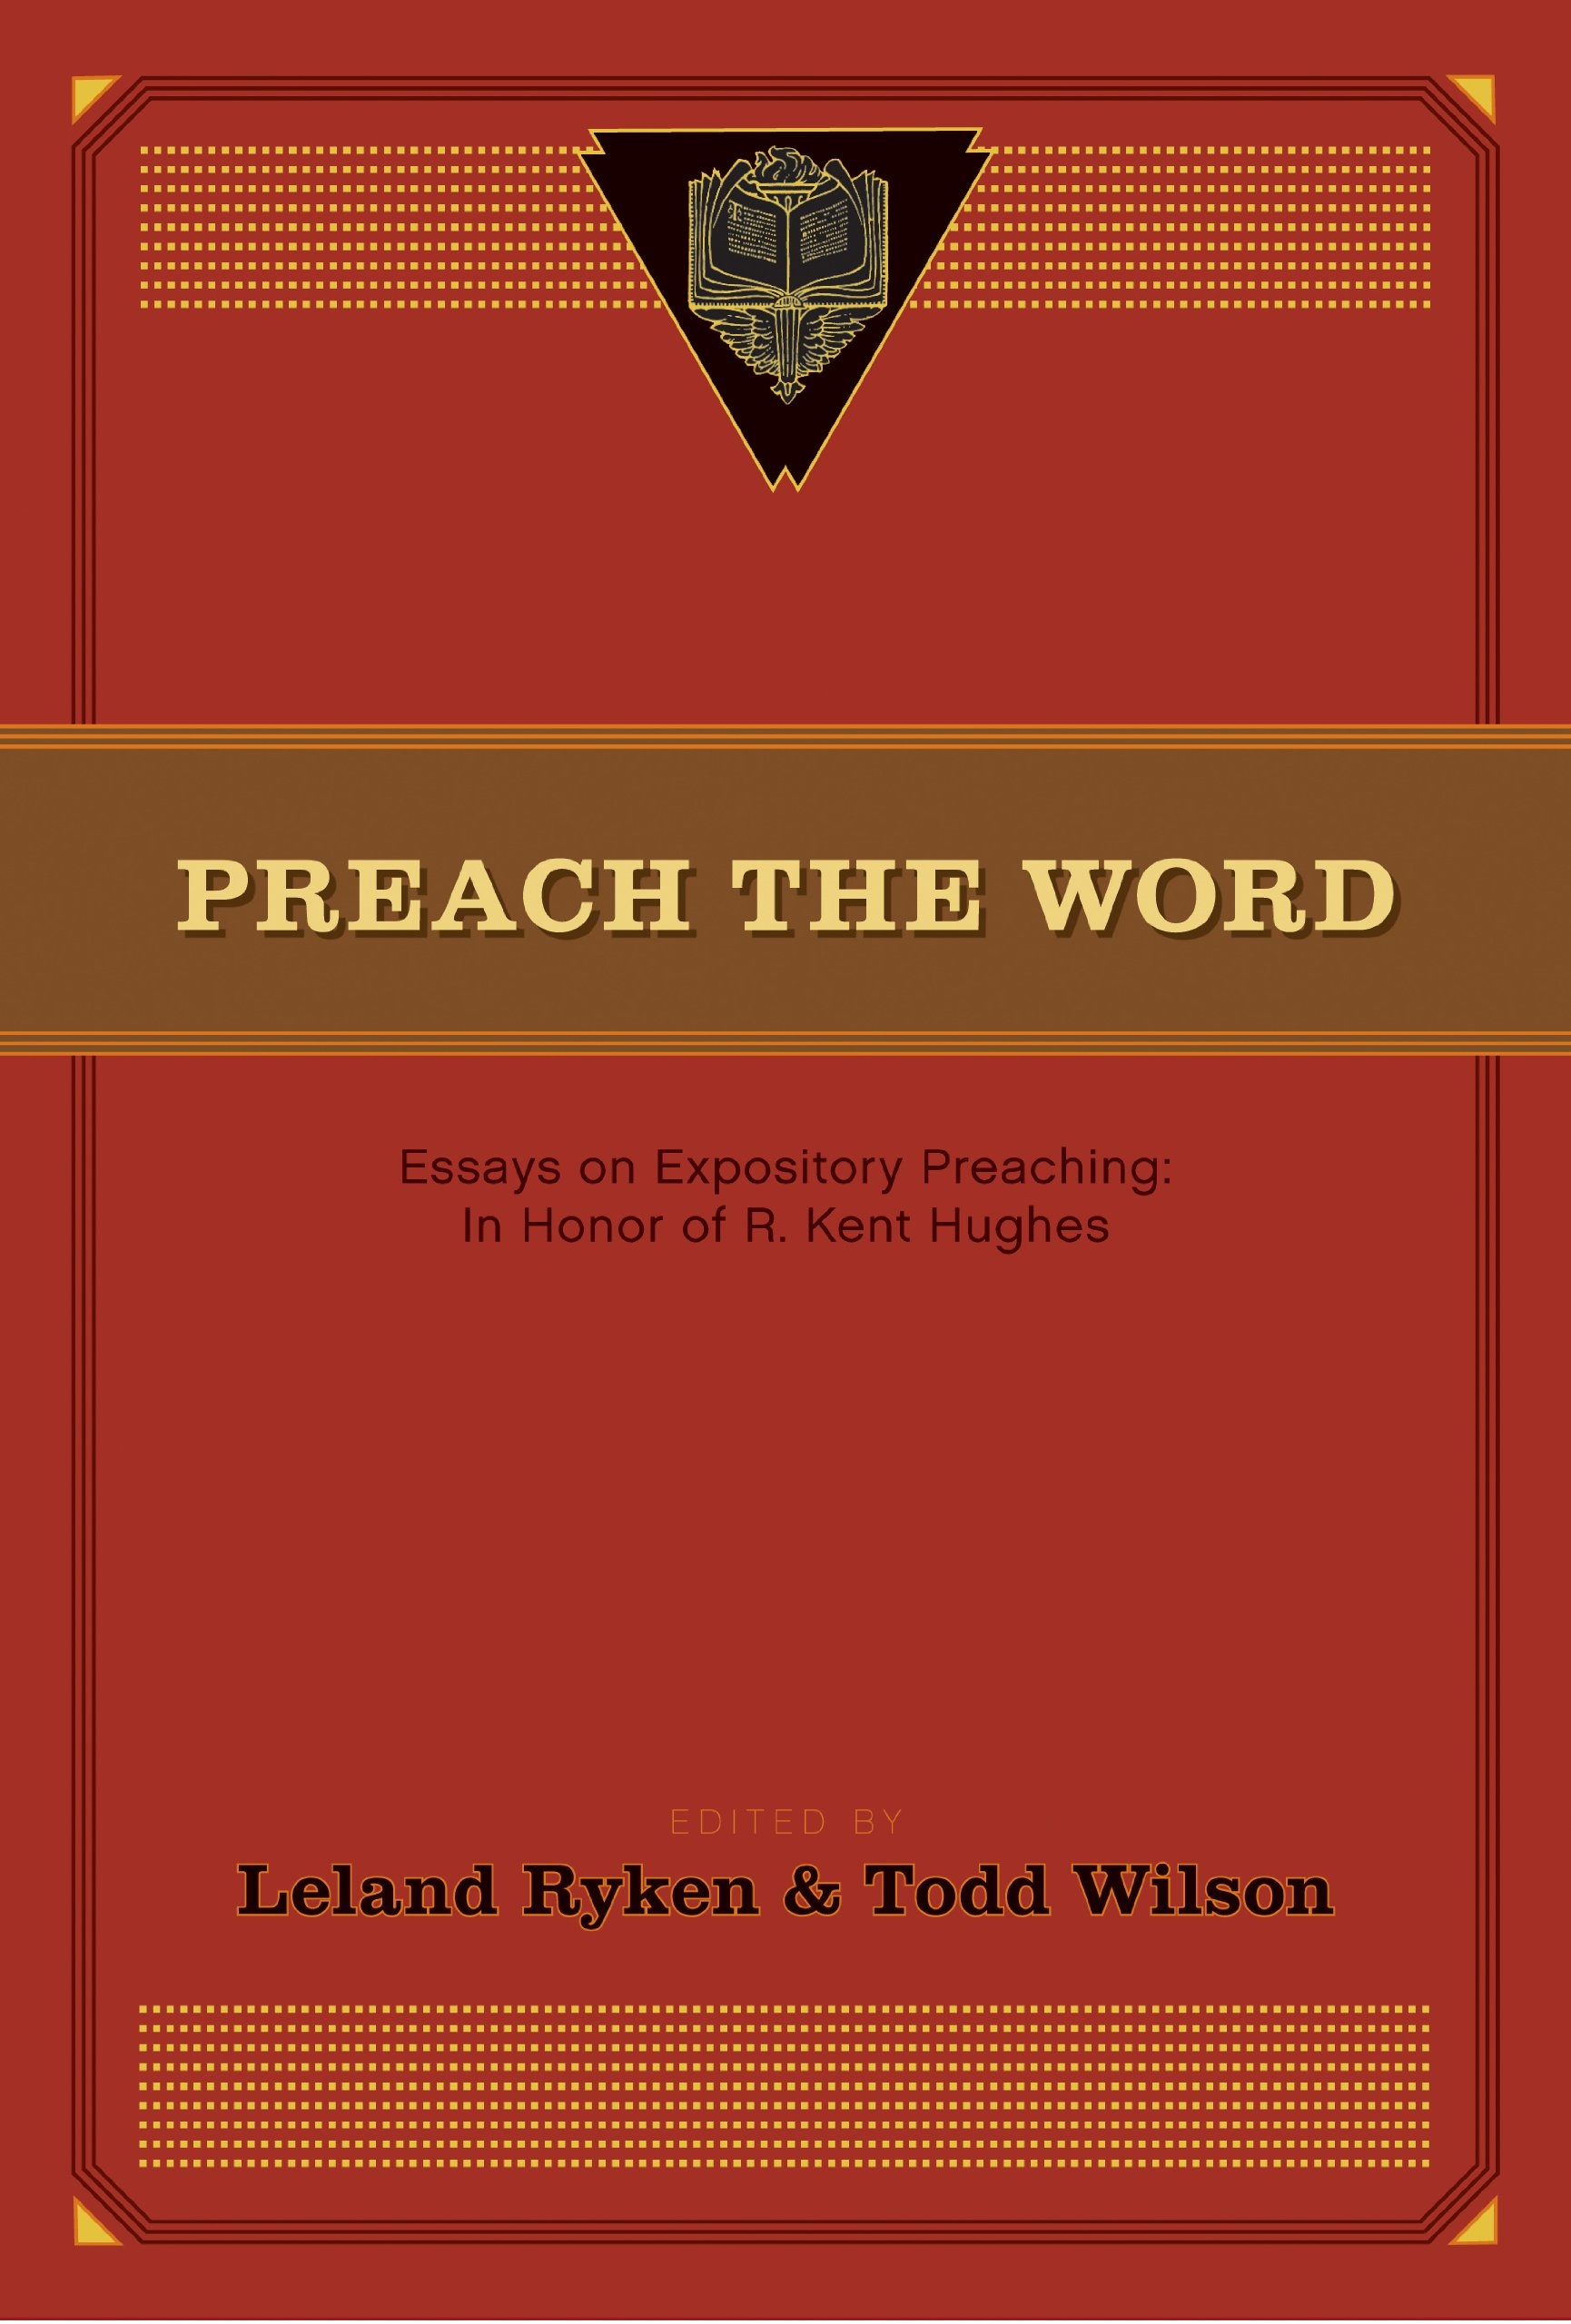 preach the word essays on expository preaching in honor of r  preach the word essays on expository preaching in honor of r kent hughes todd a wilson leland ryken todd wilson david jackman d a carson